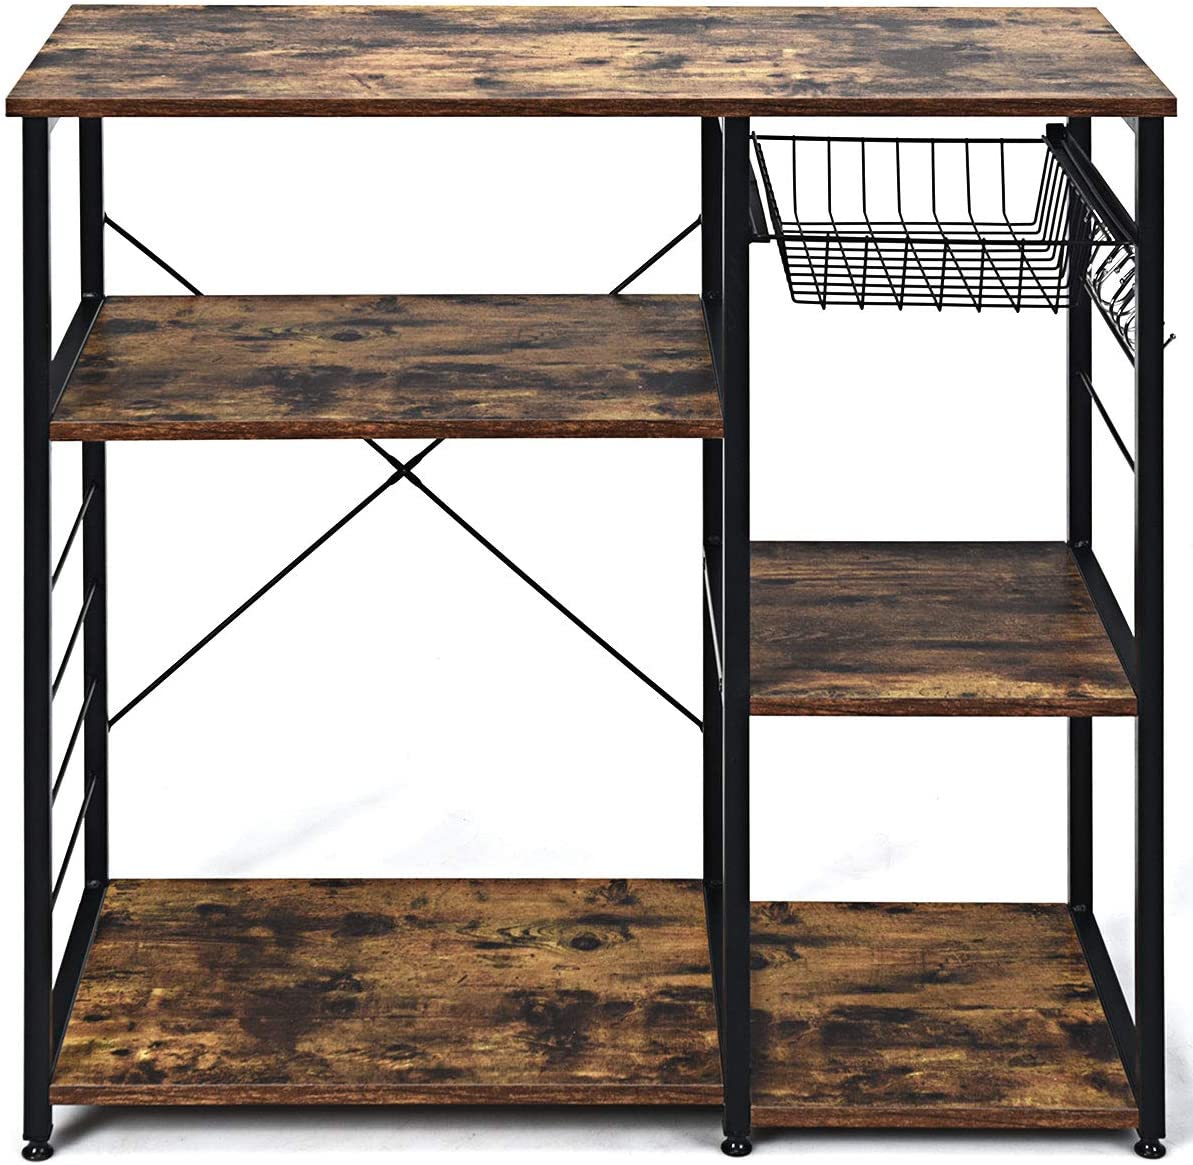 Standing Coffee Bar Table Metal Frame Giantex Kitchen Baker/'s Rack Industrial Style Microwave Oven Stand with Wire Basket Rustic Brown 6 Hooks 3 Storage Shelves